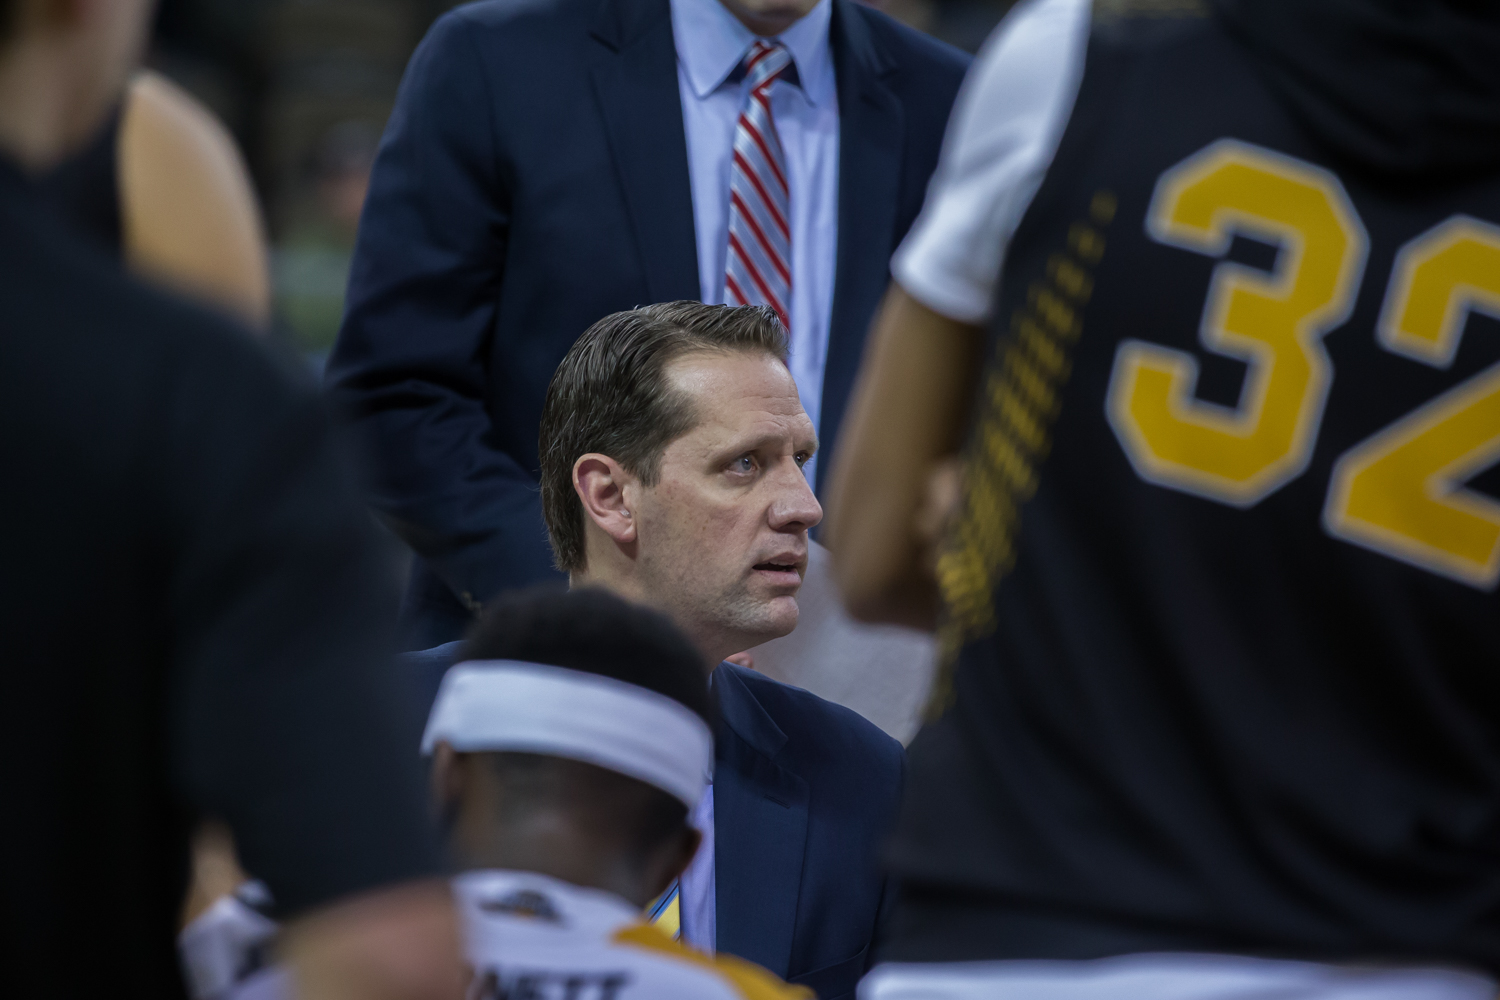 Head Coach John Brannen talks to his team during a timeout in the game against Cleveland State.